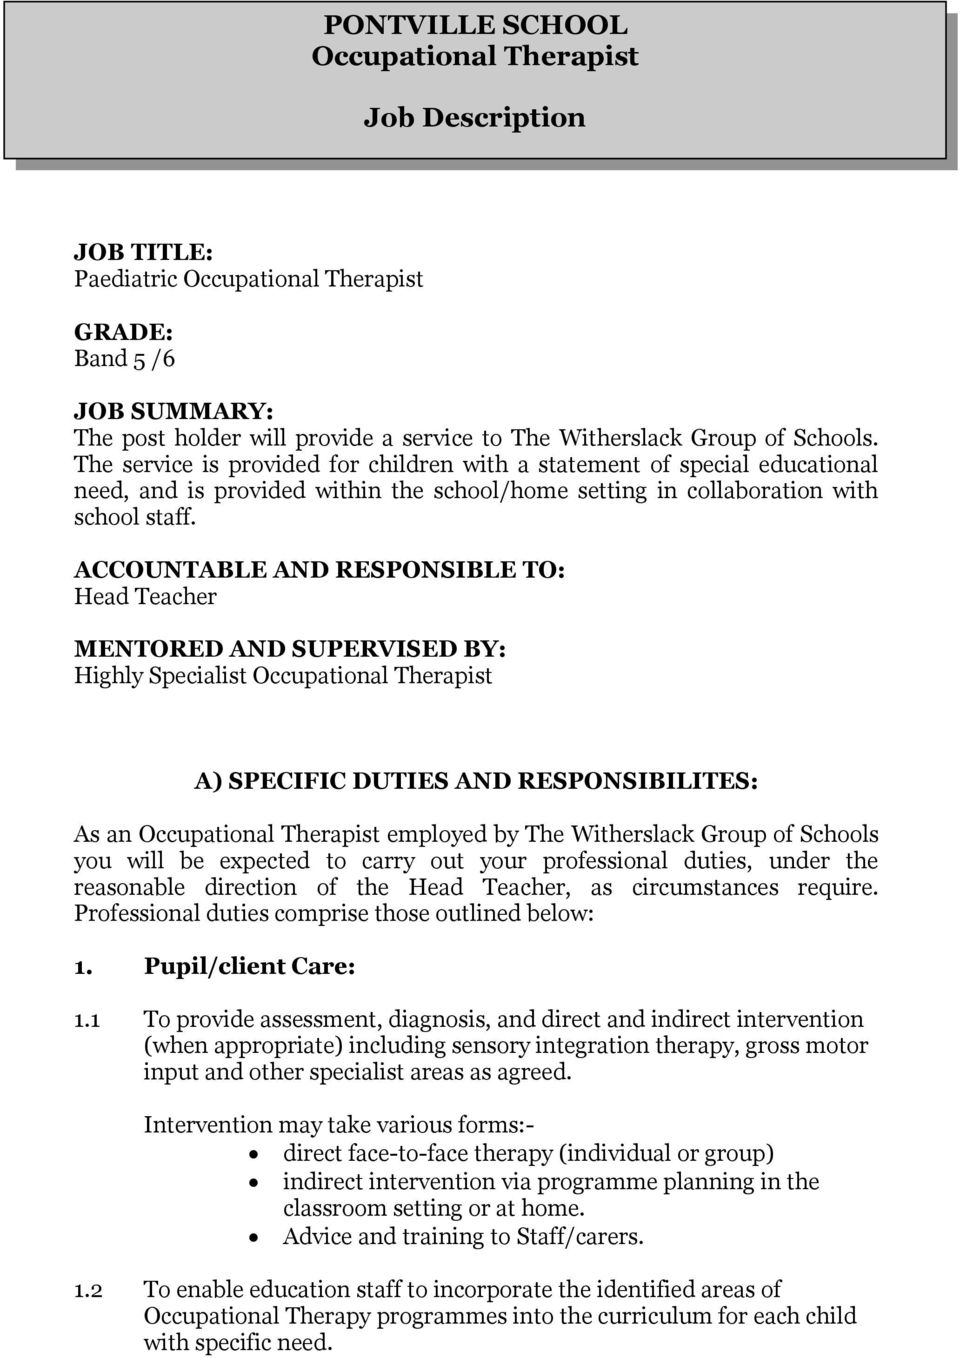 ACCOUNTABLE AND RESPONSIBLE TO: Head Teacher MENTORED AND SUPERVISED BY: Highly Specialist Occupational Therapist A) SPECIFIC DUTIES AND RESPONSIBILITES: As an Occupational Therapist employed by The